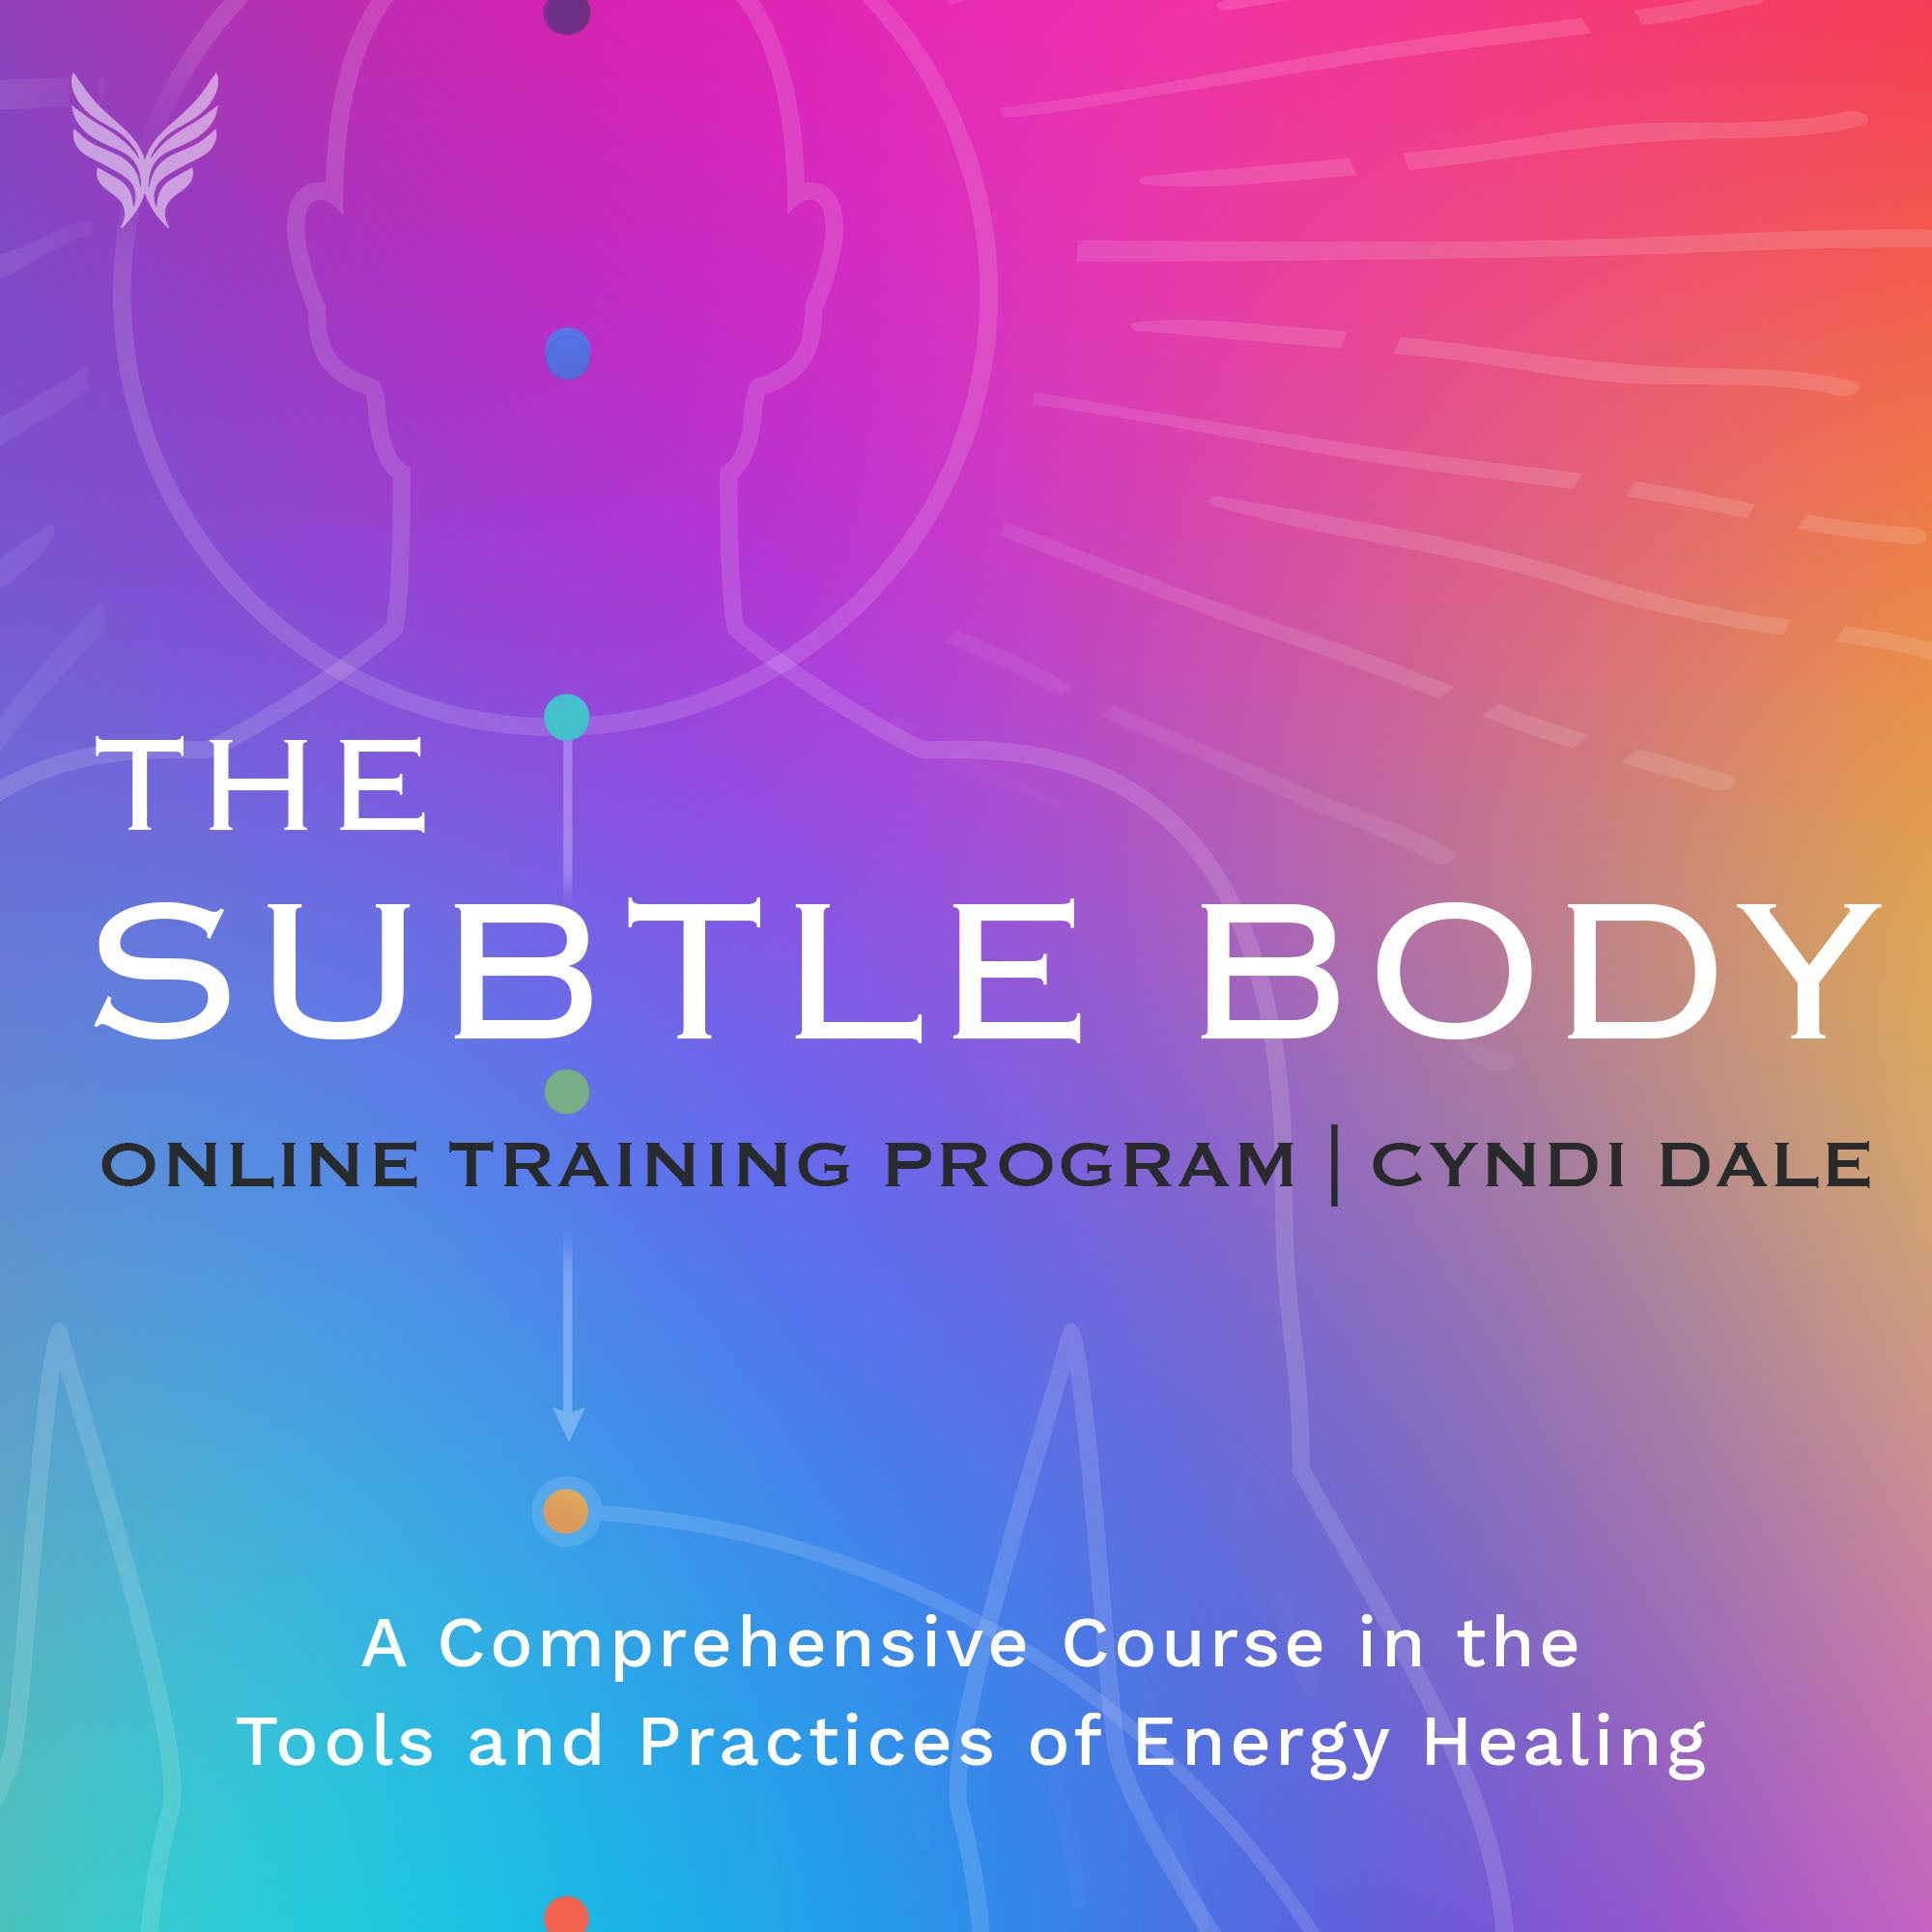 The Subtle Body Online Training Program